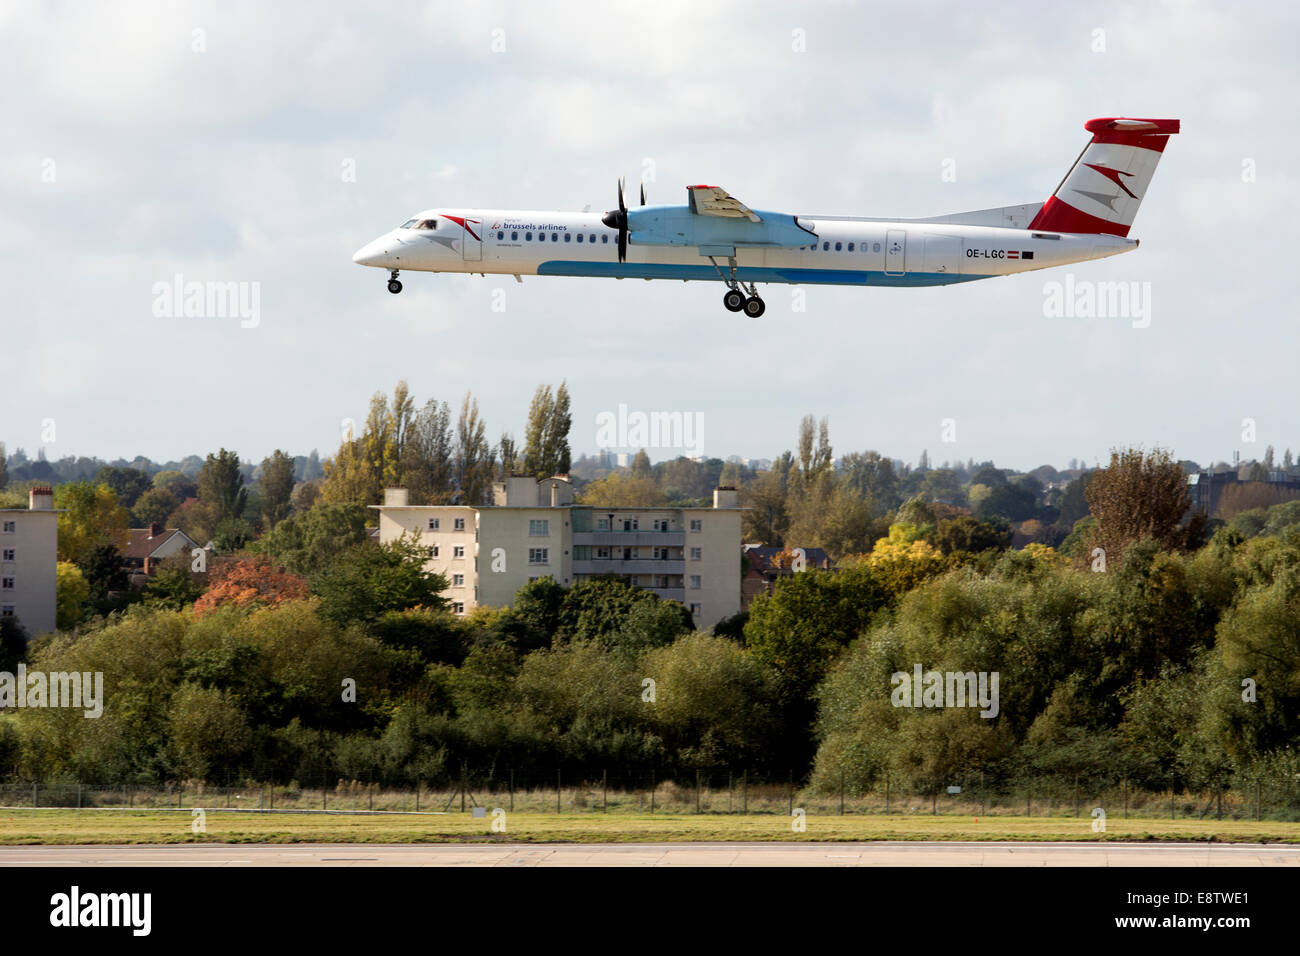 Brussels Airlines DHC Dash 8 aircraft landing at Birmingham Airport, UK - Stock Image